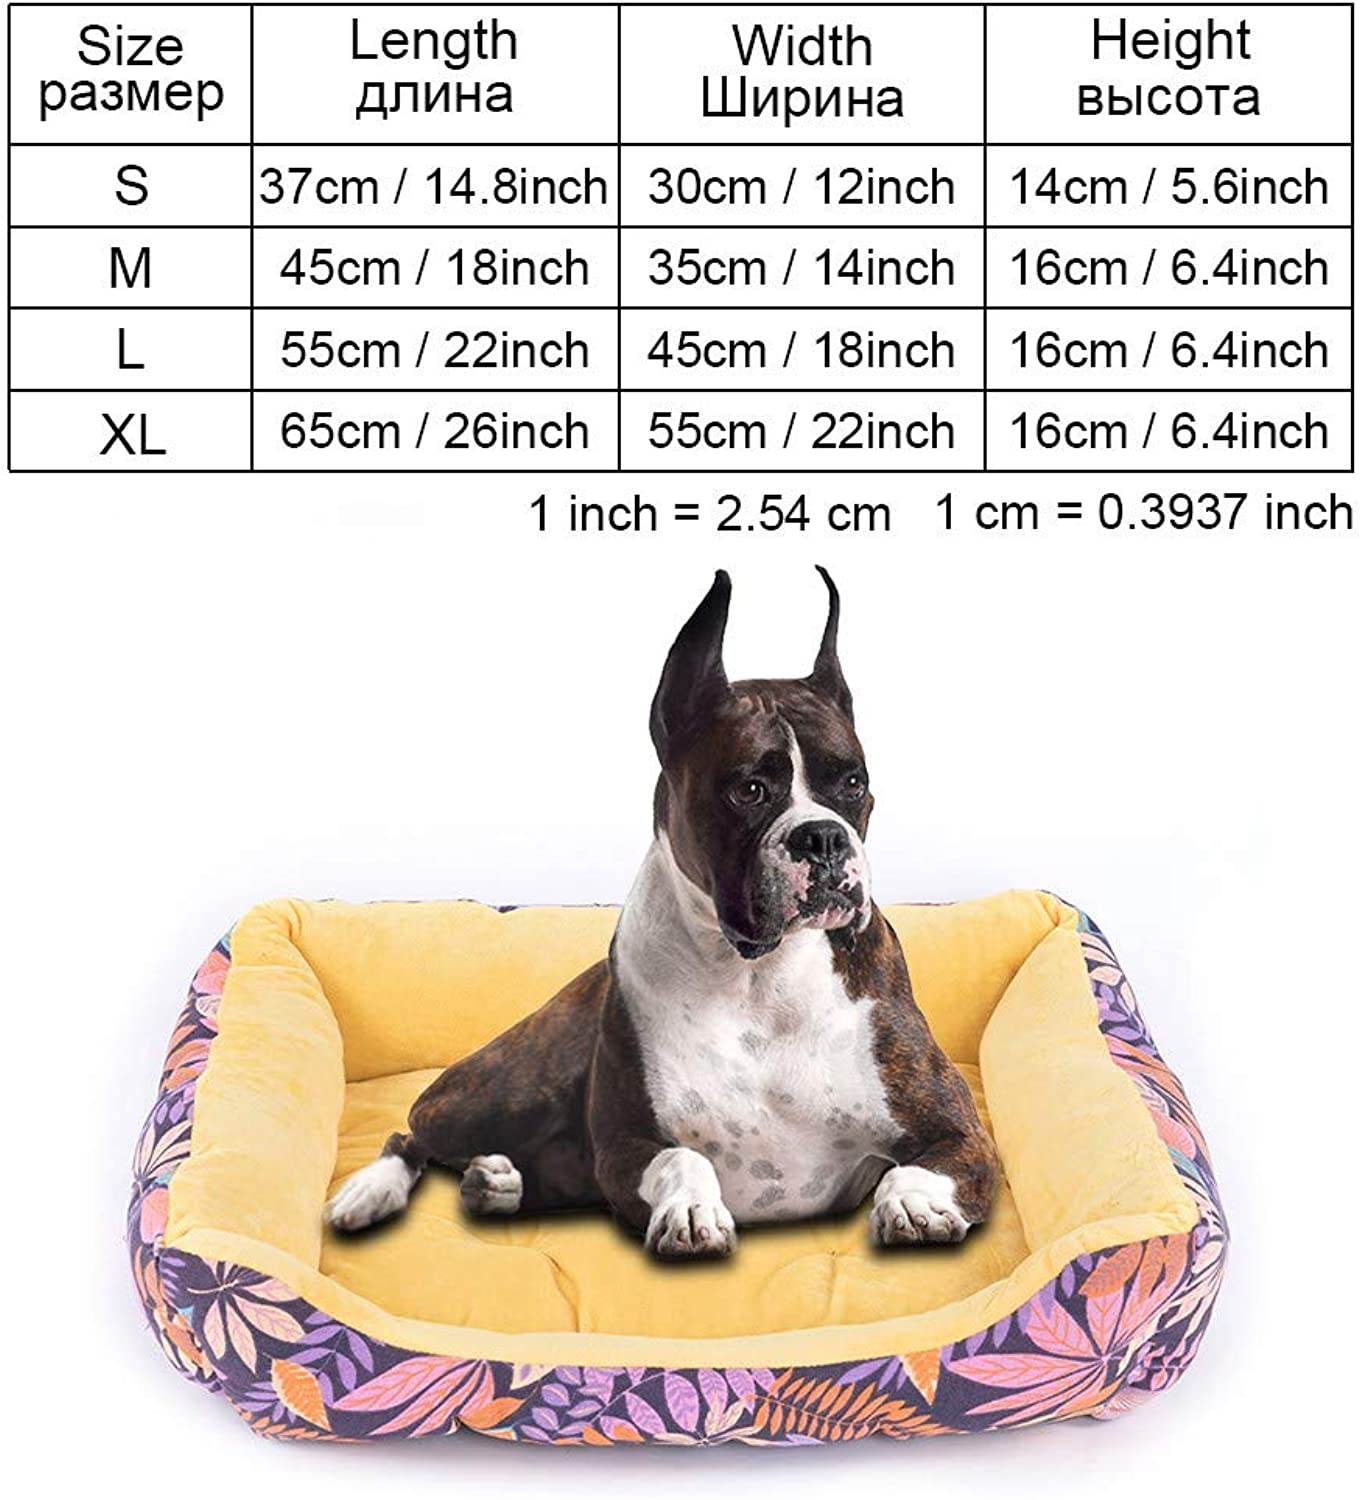 Cookisn Dog Bed Bench for Dogs Pet Products Puppy Bed House for Cat Dog Beds Mat Sofa Lounger for Small Medium Large Dogs Cat Pet Kennel yellowCOO041 M 45x35cm